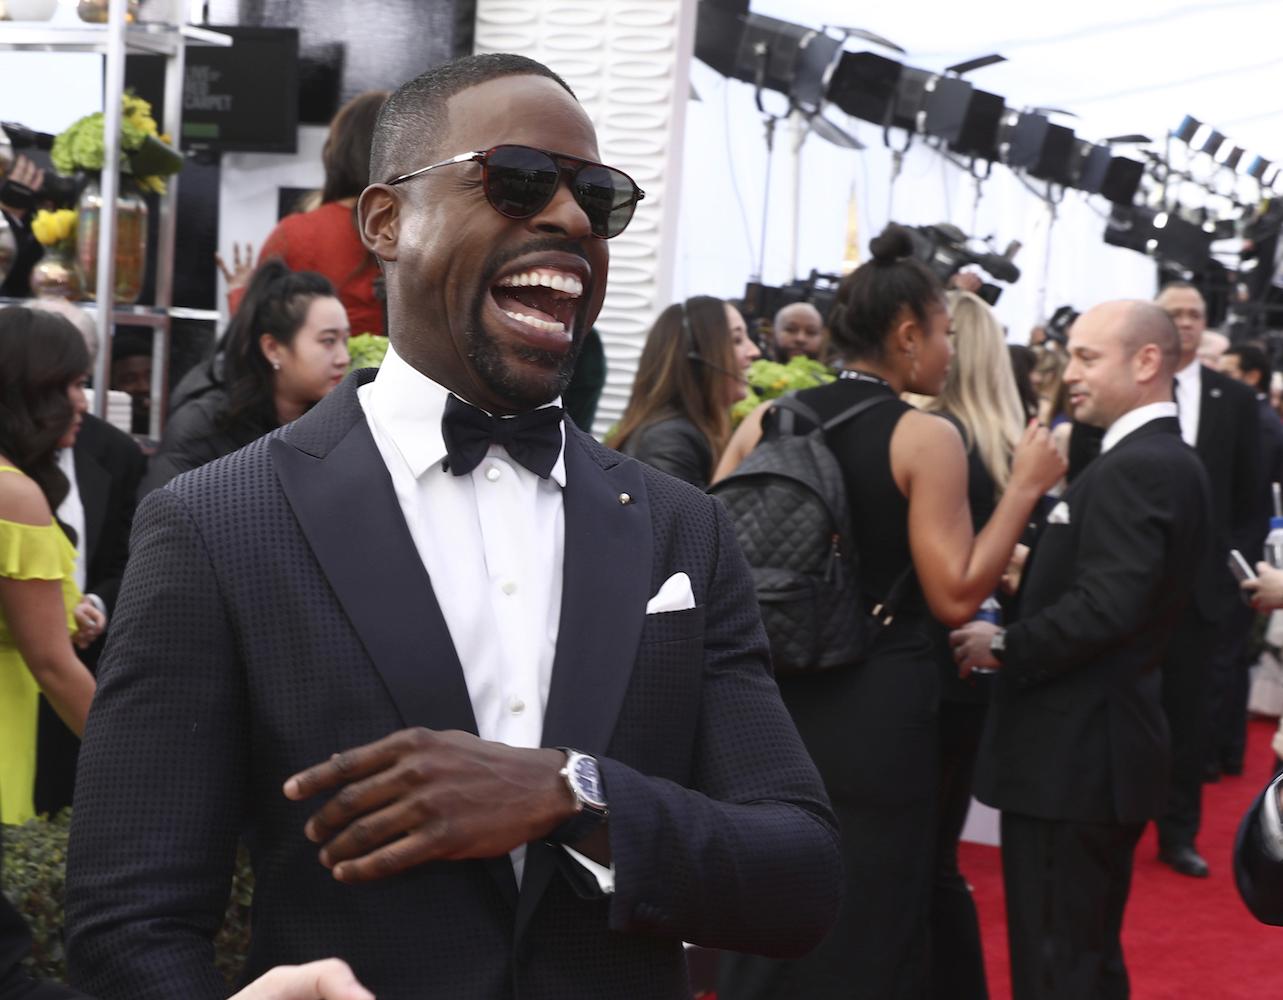 <div class='meta'><div class='origin-logo' data-origin='AP'></div><span class='caption-text' data-credit='Matt Sayles/Invision/AP'>Sterling K. Brown arrives at the 24th annual Screen Actors Guild Awards at the Shrine Auditorium & Expo Hall on Sunday, Jan. 21, 2018, in Los Angeles.</span></div>